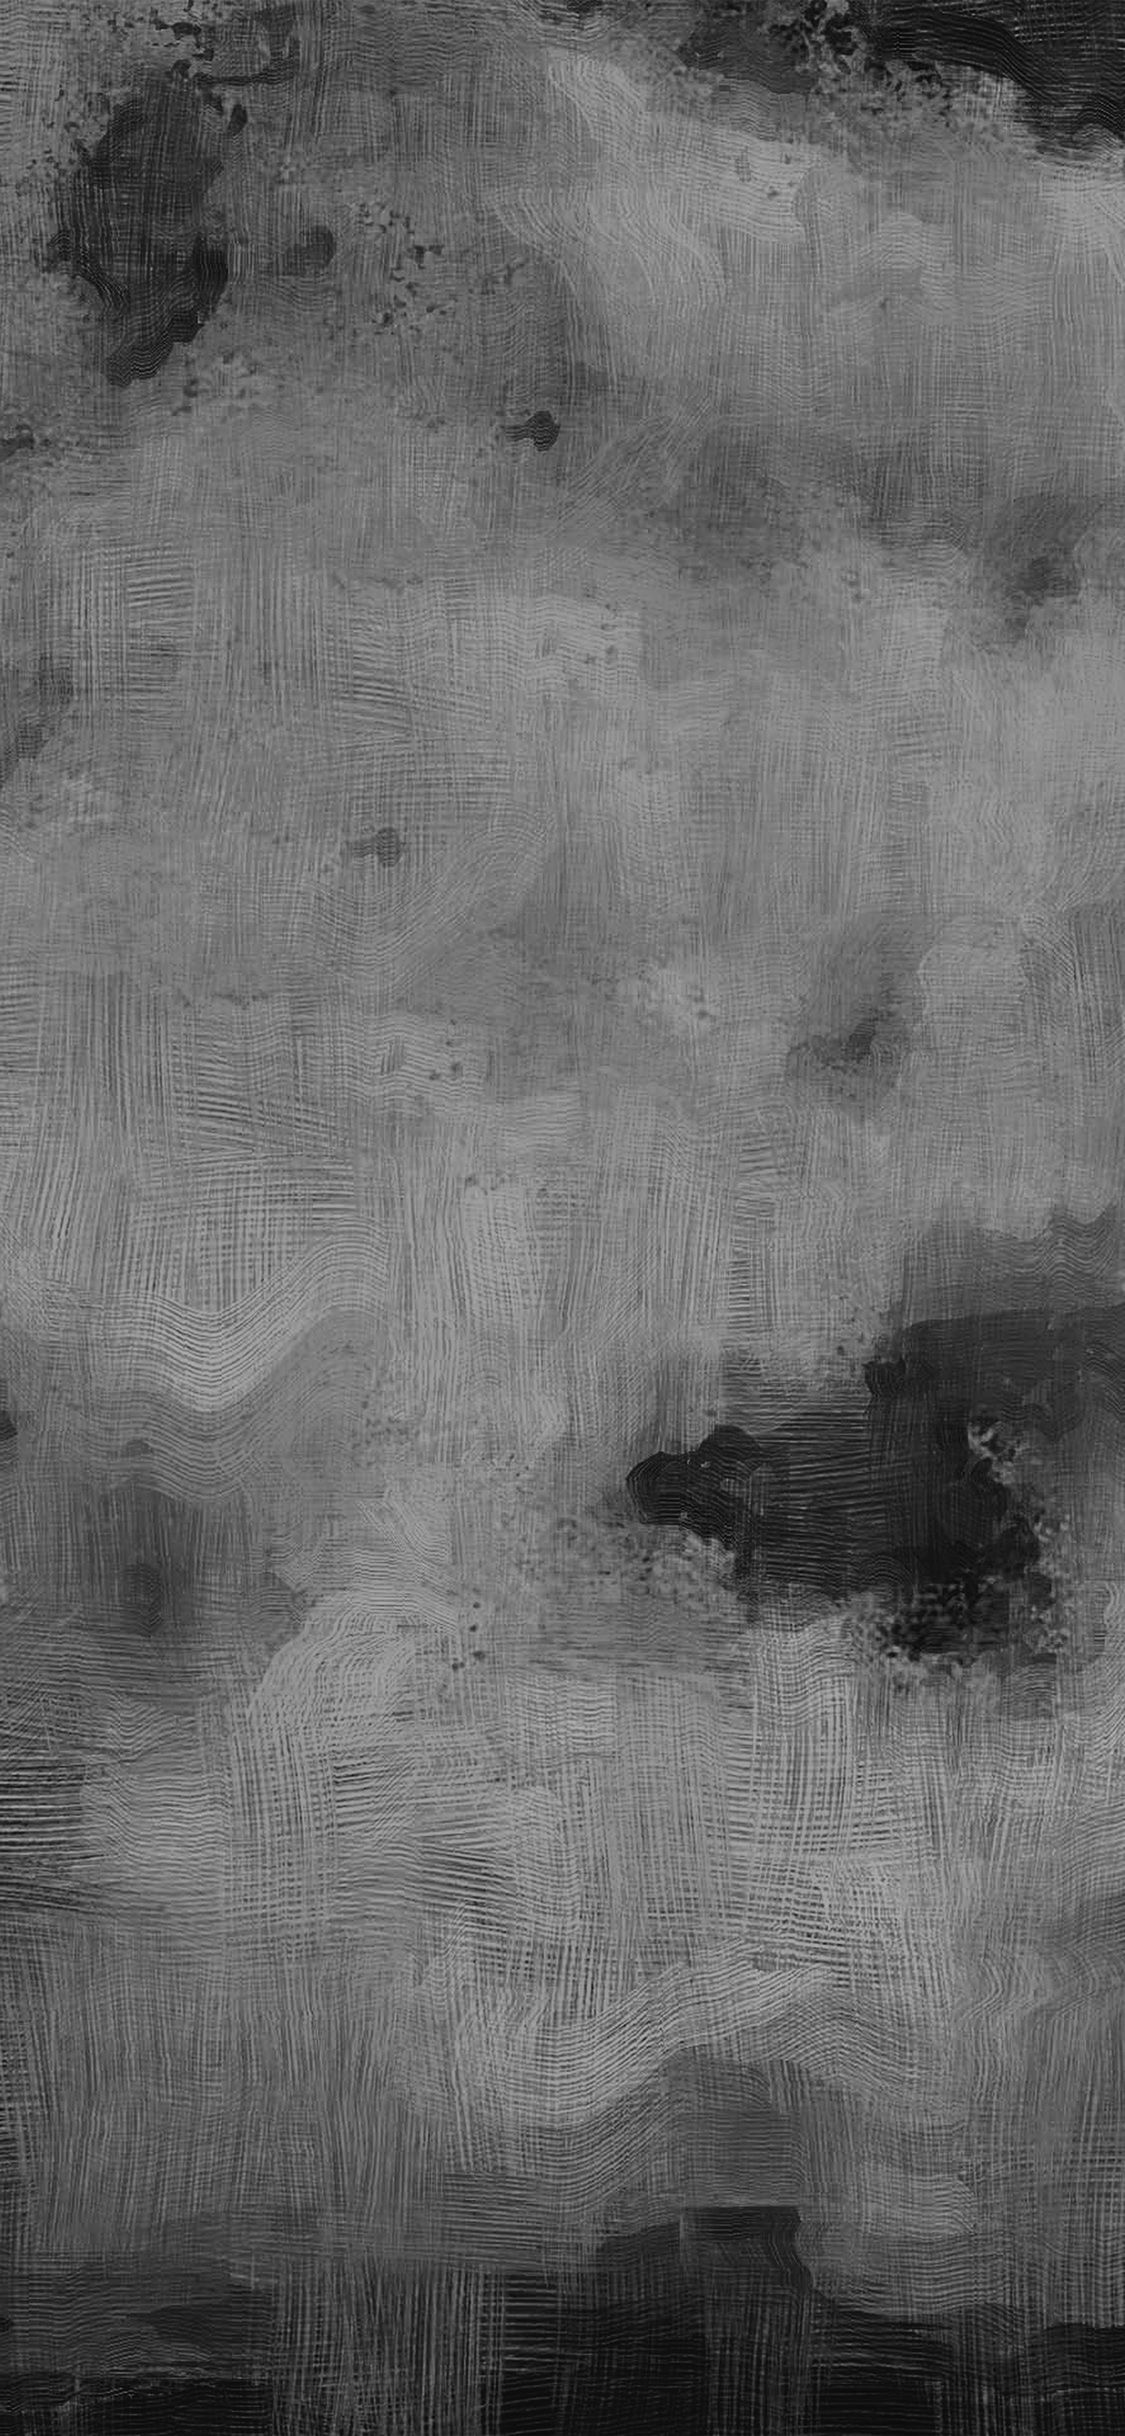 1125x2436 iPhonePapers - vl25-samsung-galaxy-dark-texture-art-oil-painting-pattern